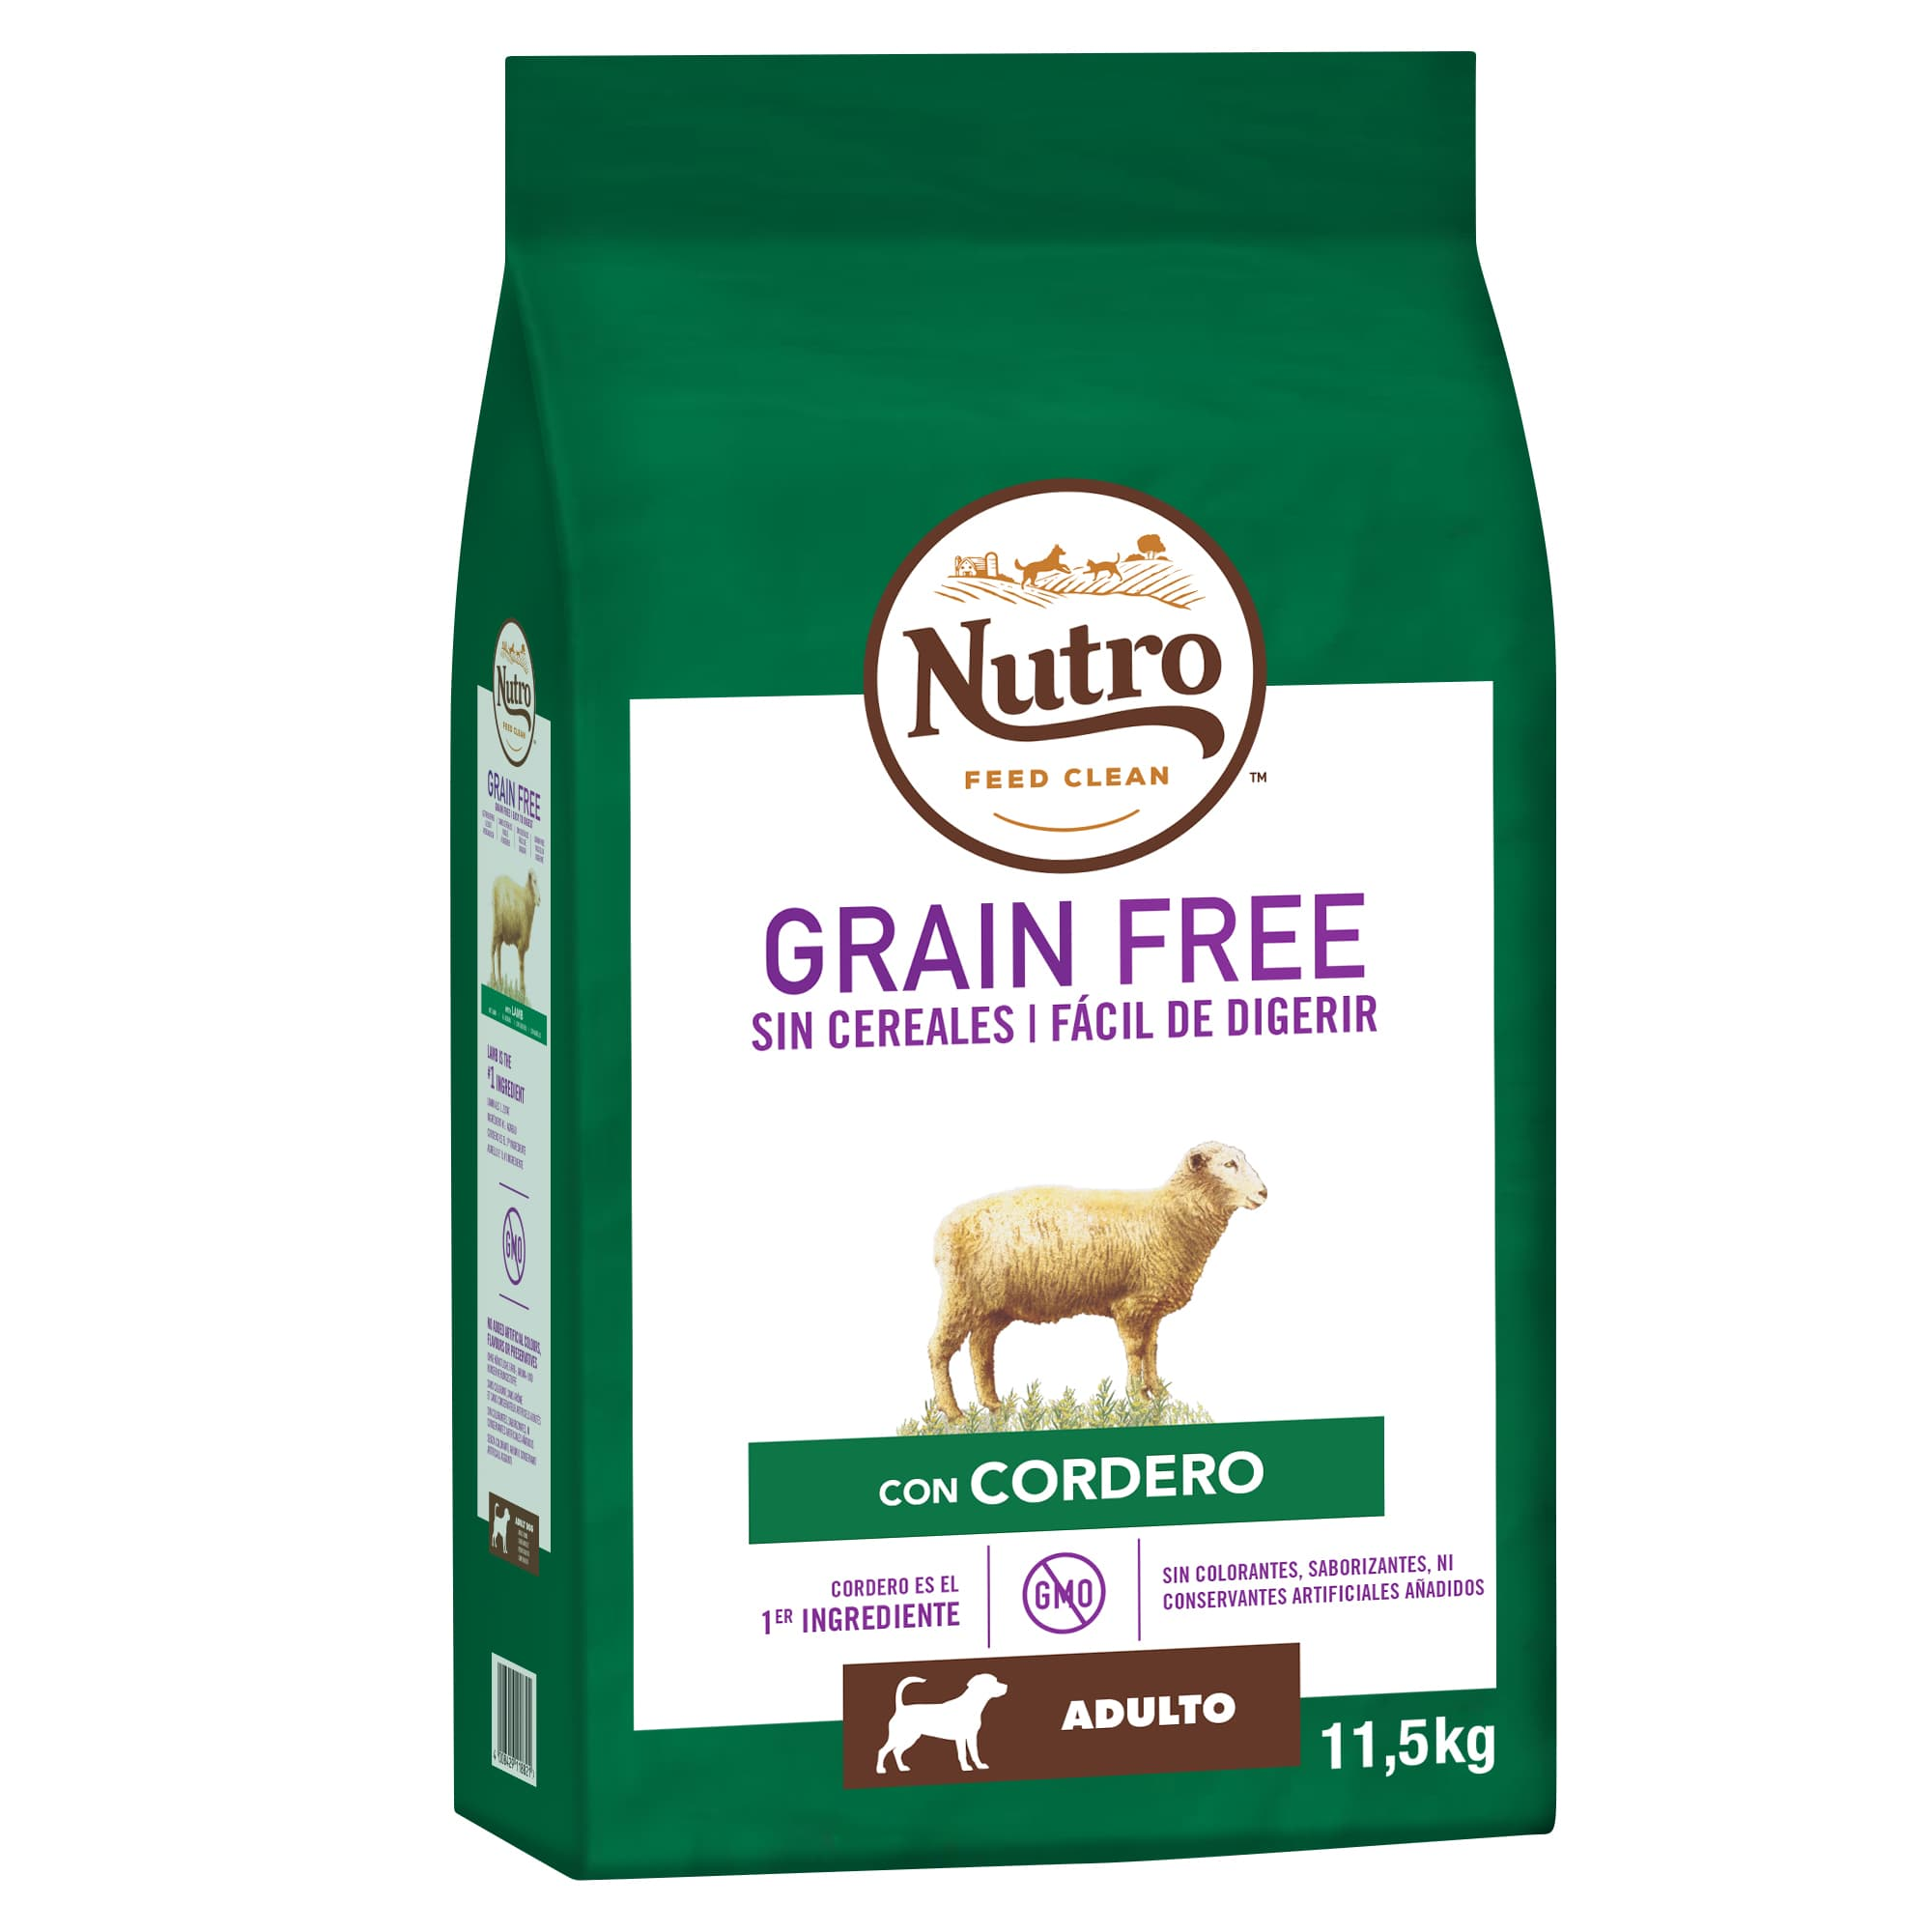 Nutro Grain free adulto mediano cordero 14,5 kg, , large image number null